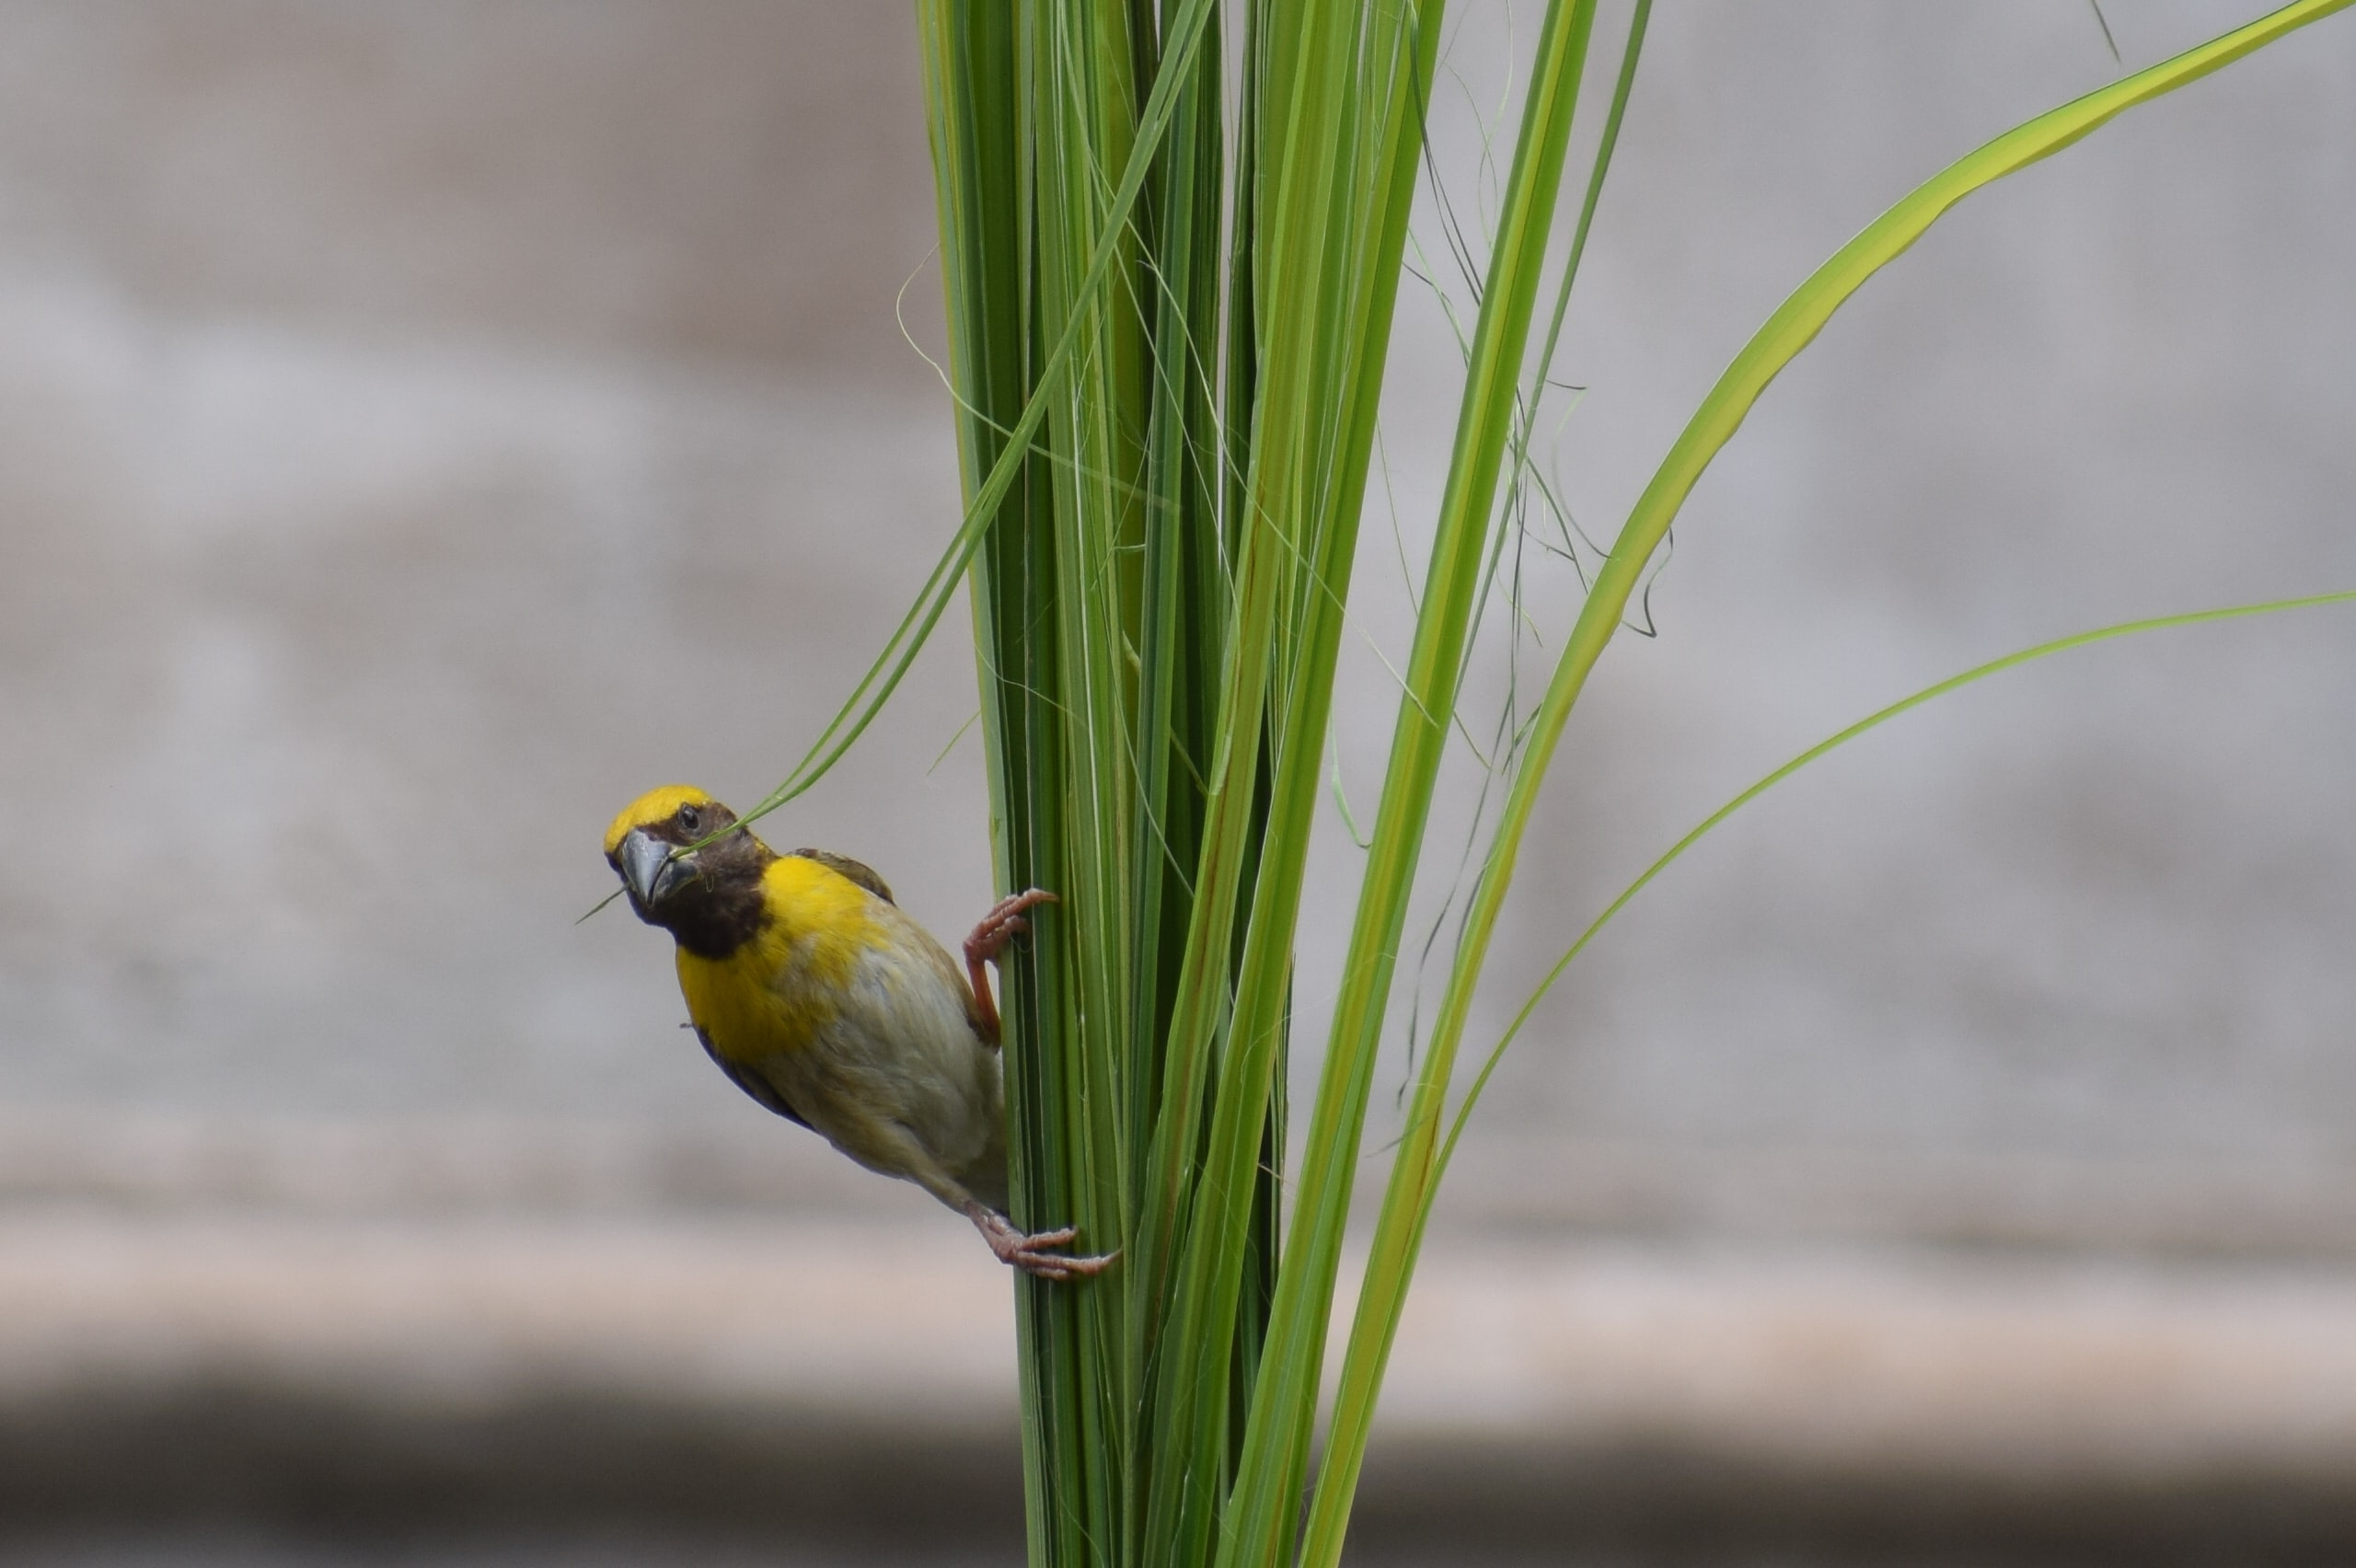 yellow and gray birds perched on green leaf